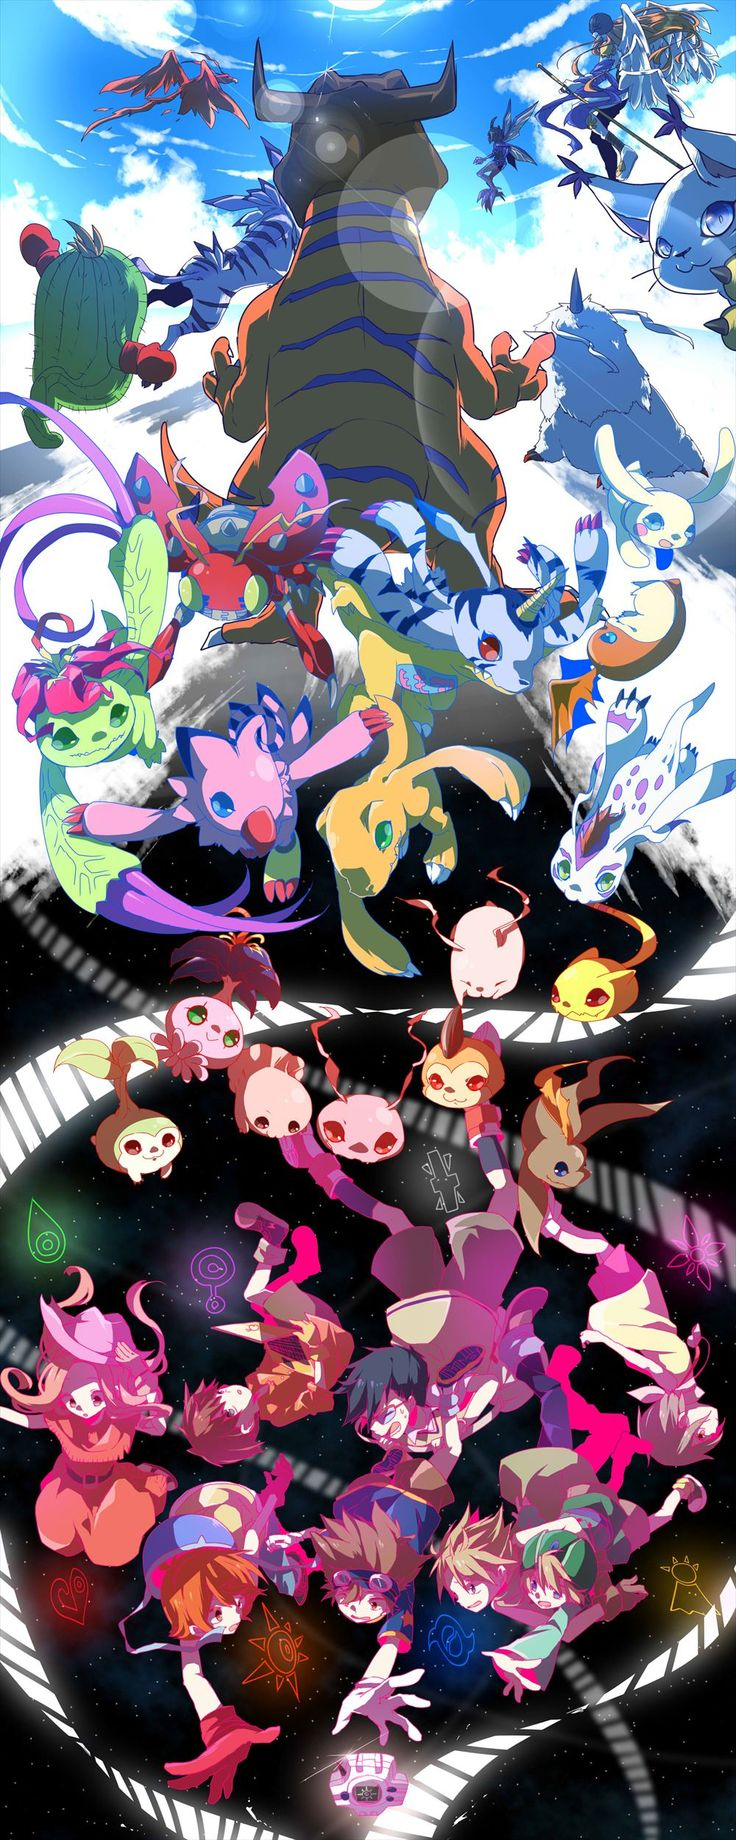 Digimon Adventure. The art is beautiful. & Gatomon in the top right :o She's cuute.!